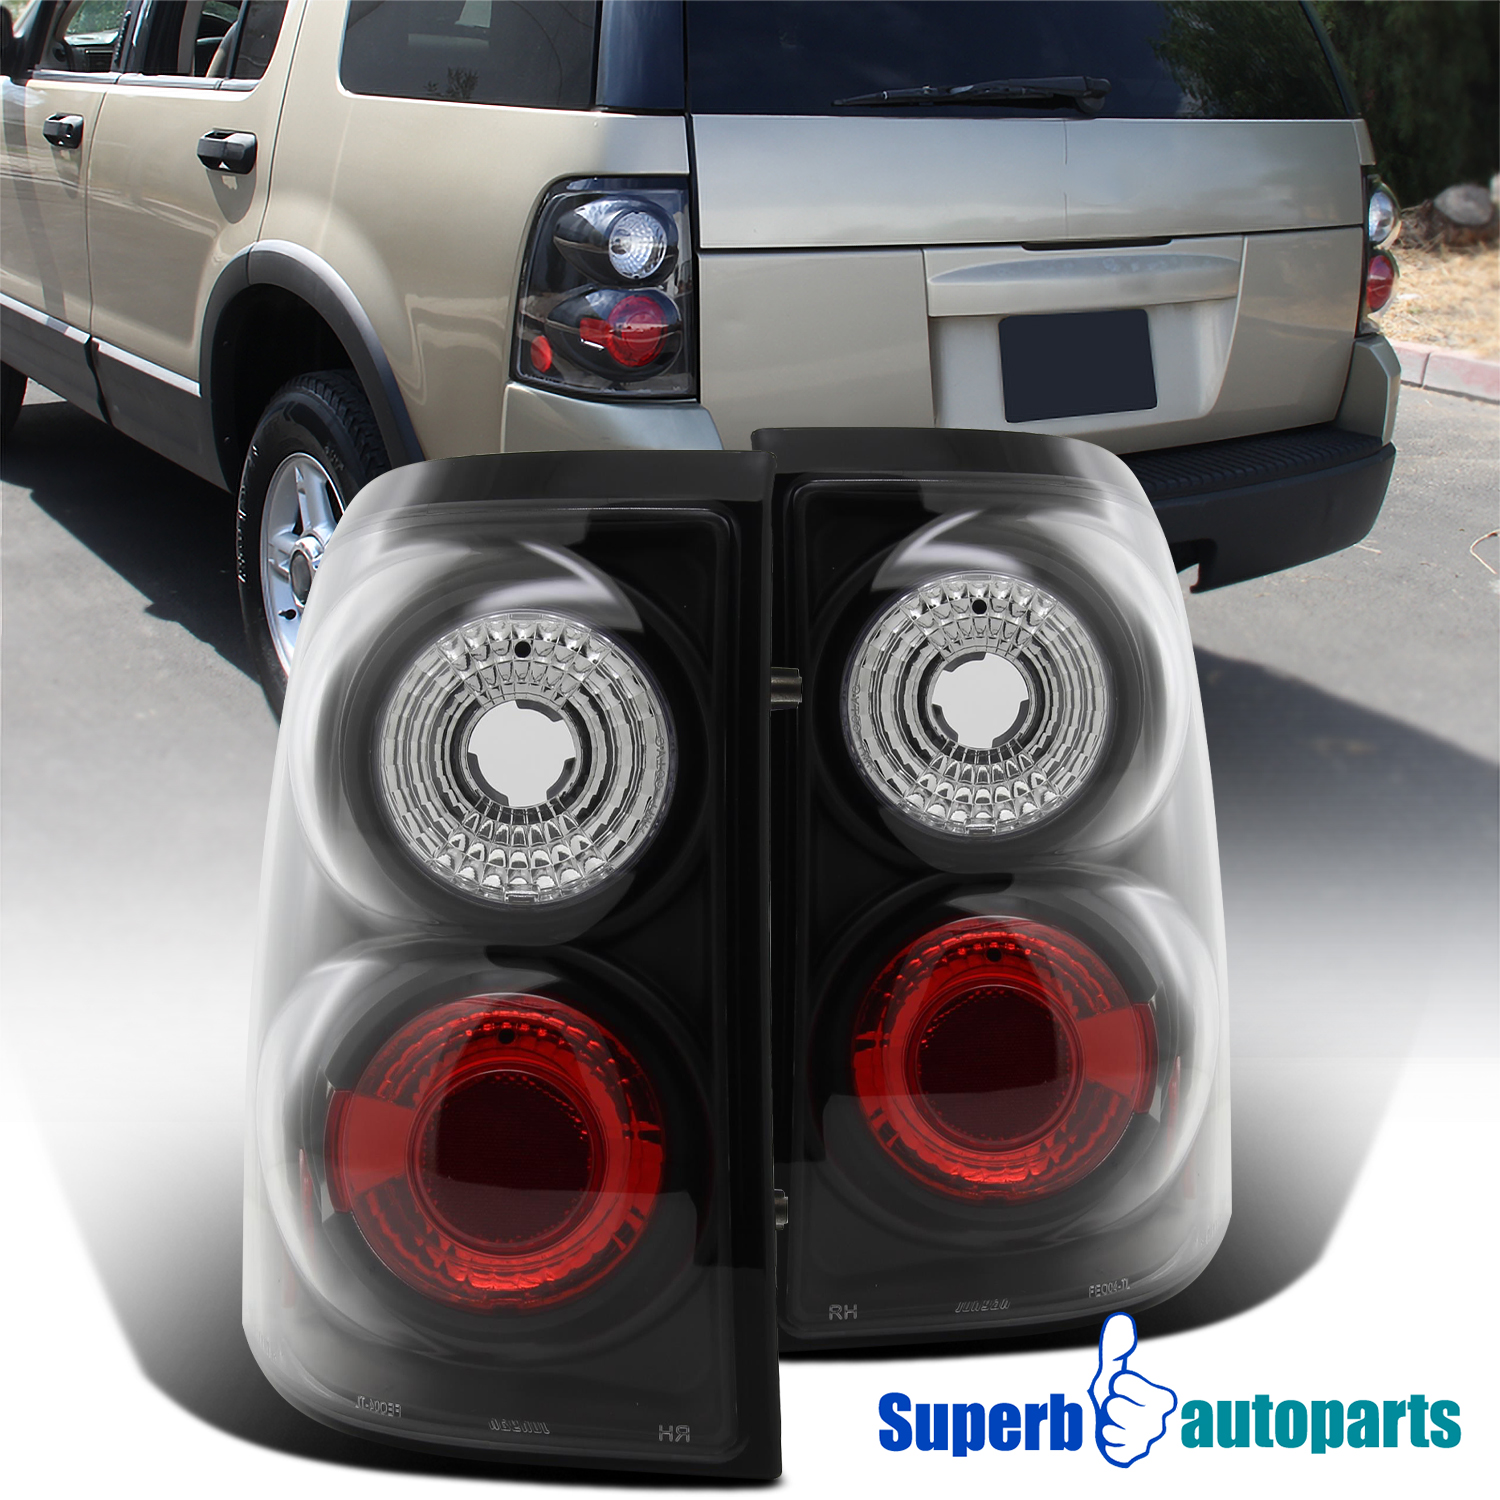 Details About For 2002 2005 Ford Explorer Replacement Tail Lamps Brake Lights Black